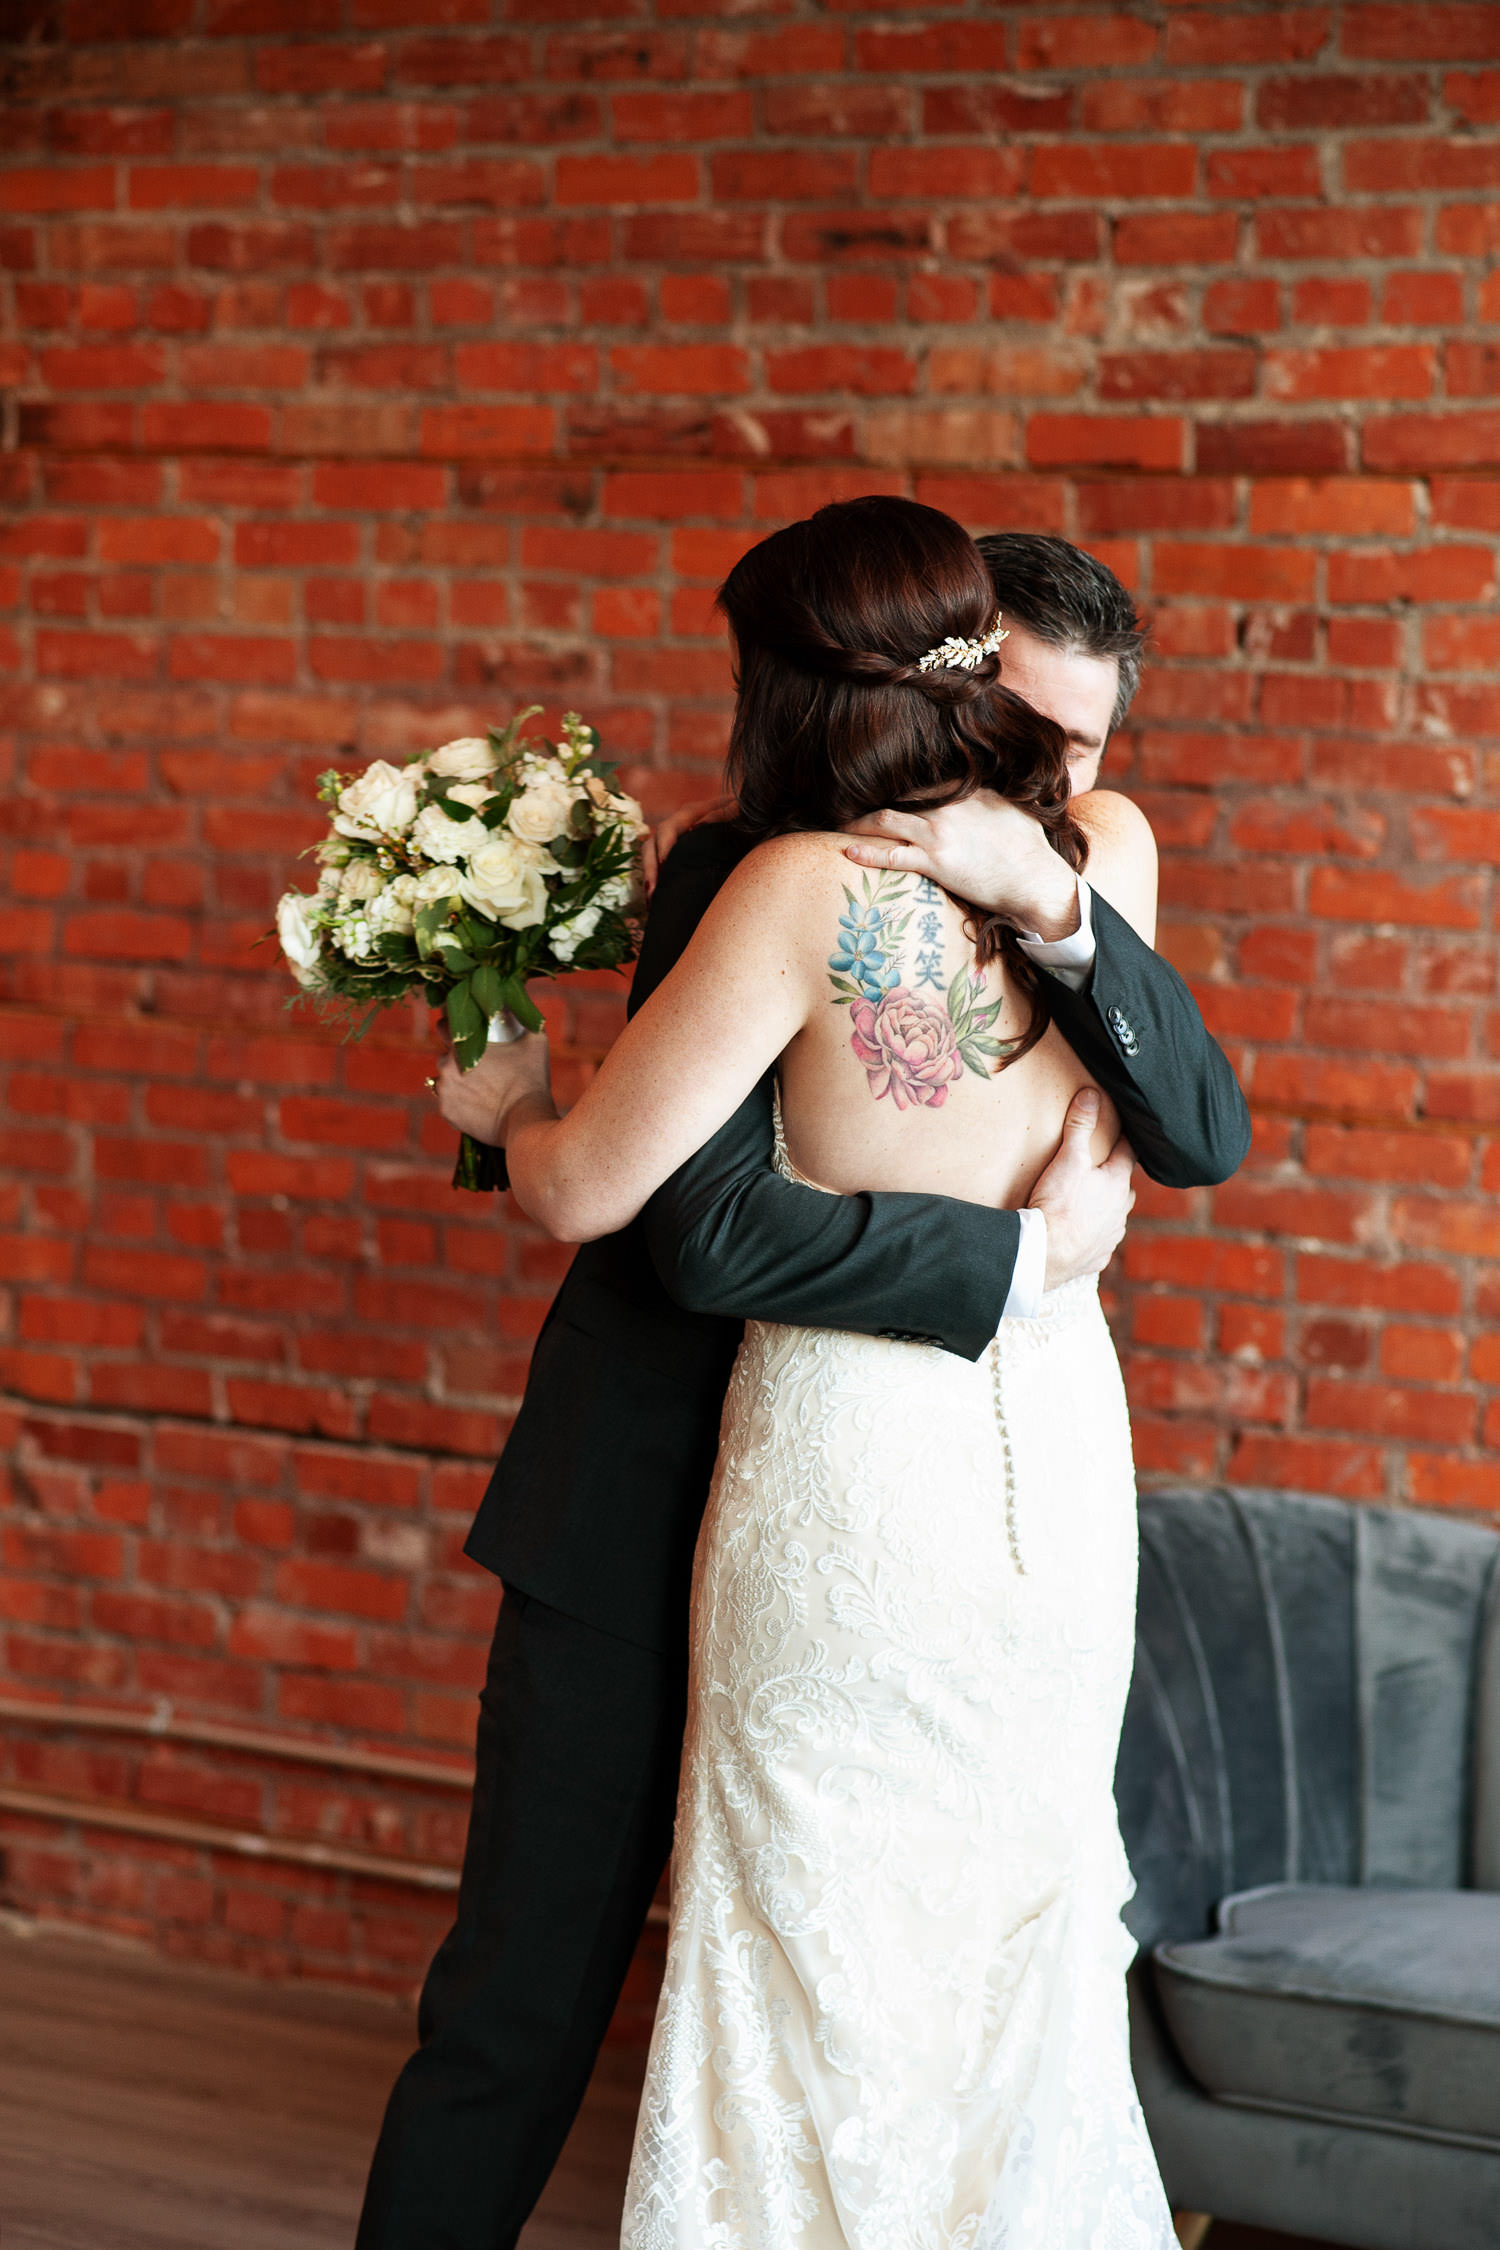 Couple embrace during their first look at Venue 308 captured by Tara Whittaker Photography